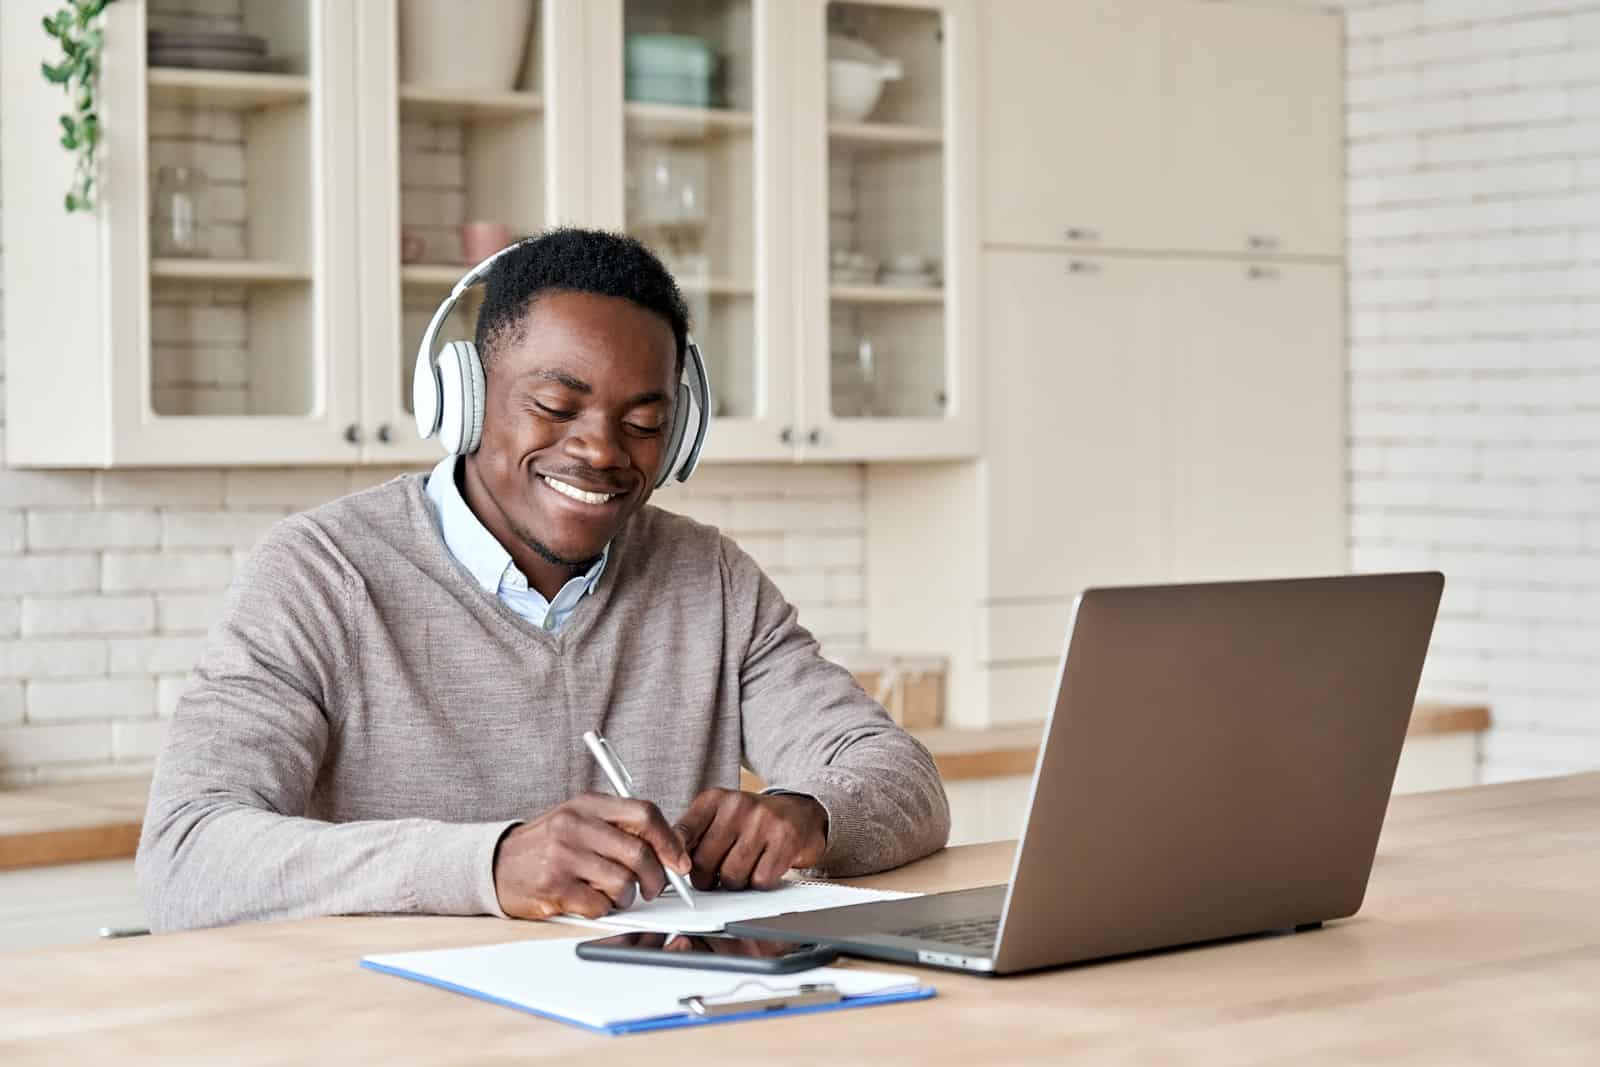 Happy african business man, student wearing headphones elearning on laptop computer sitting at kitchen table